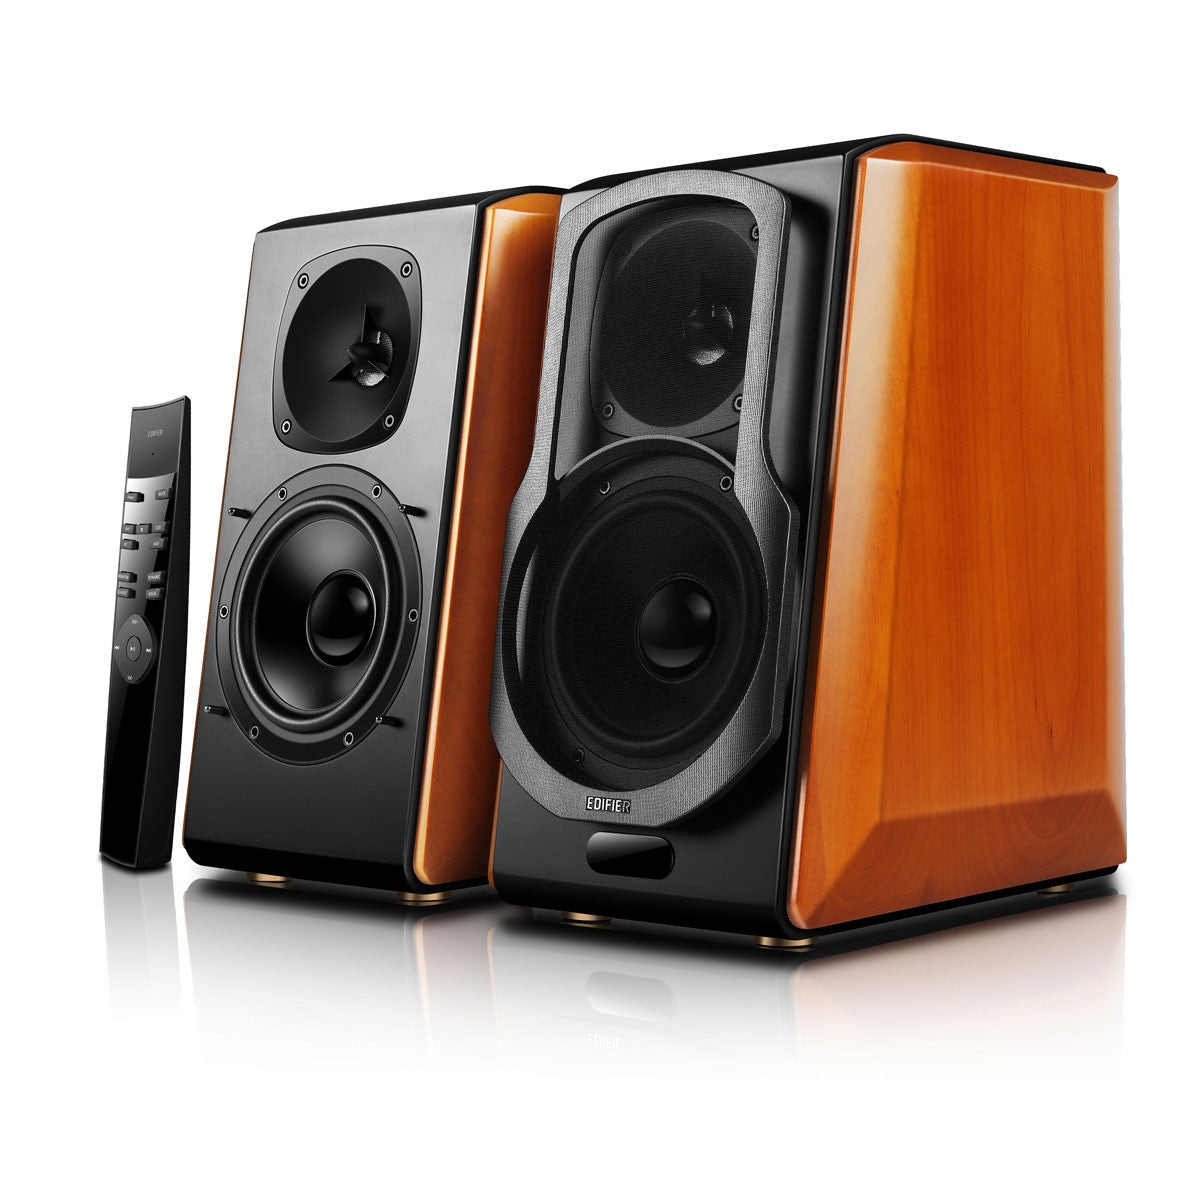 S2000Pro Bookshelf Studio Monitor Speakers